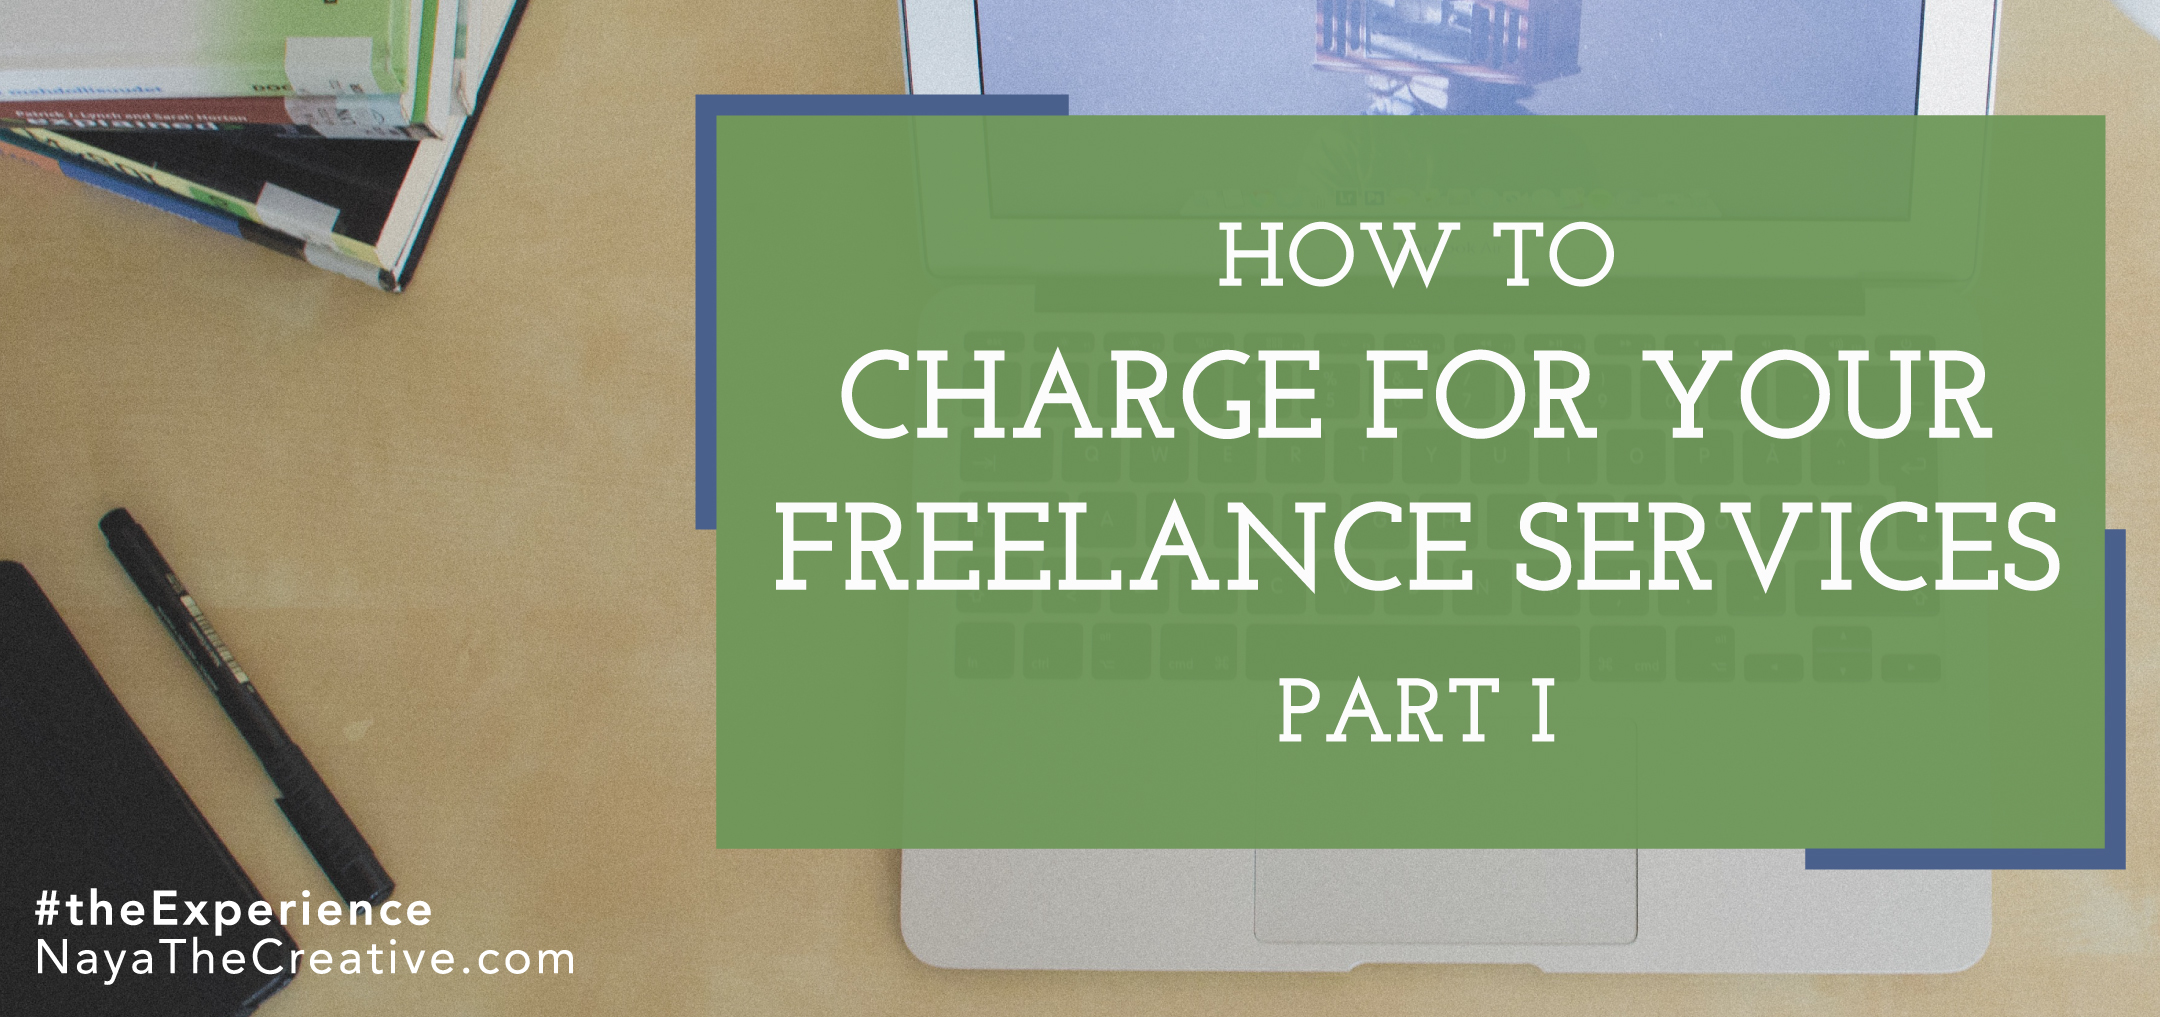 How to Charge for your services hero image with laptop and books in background